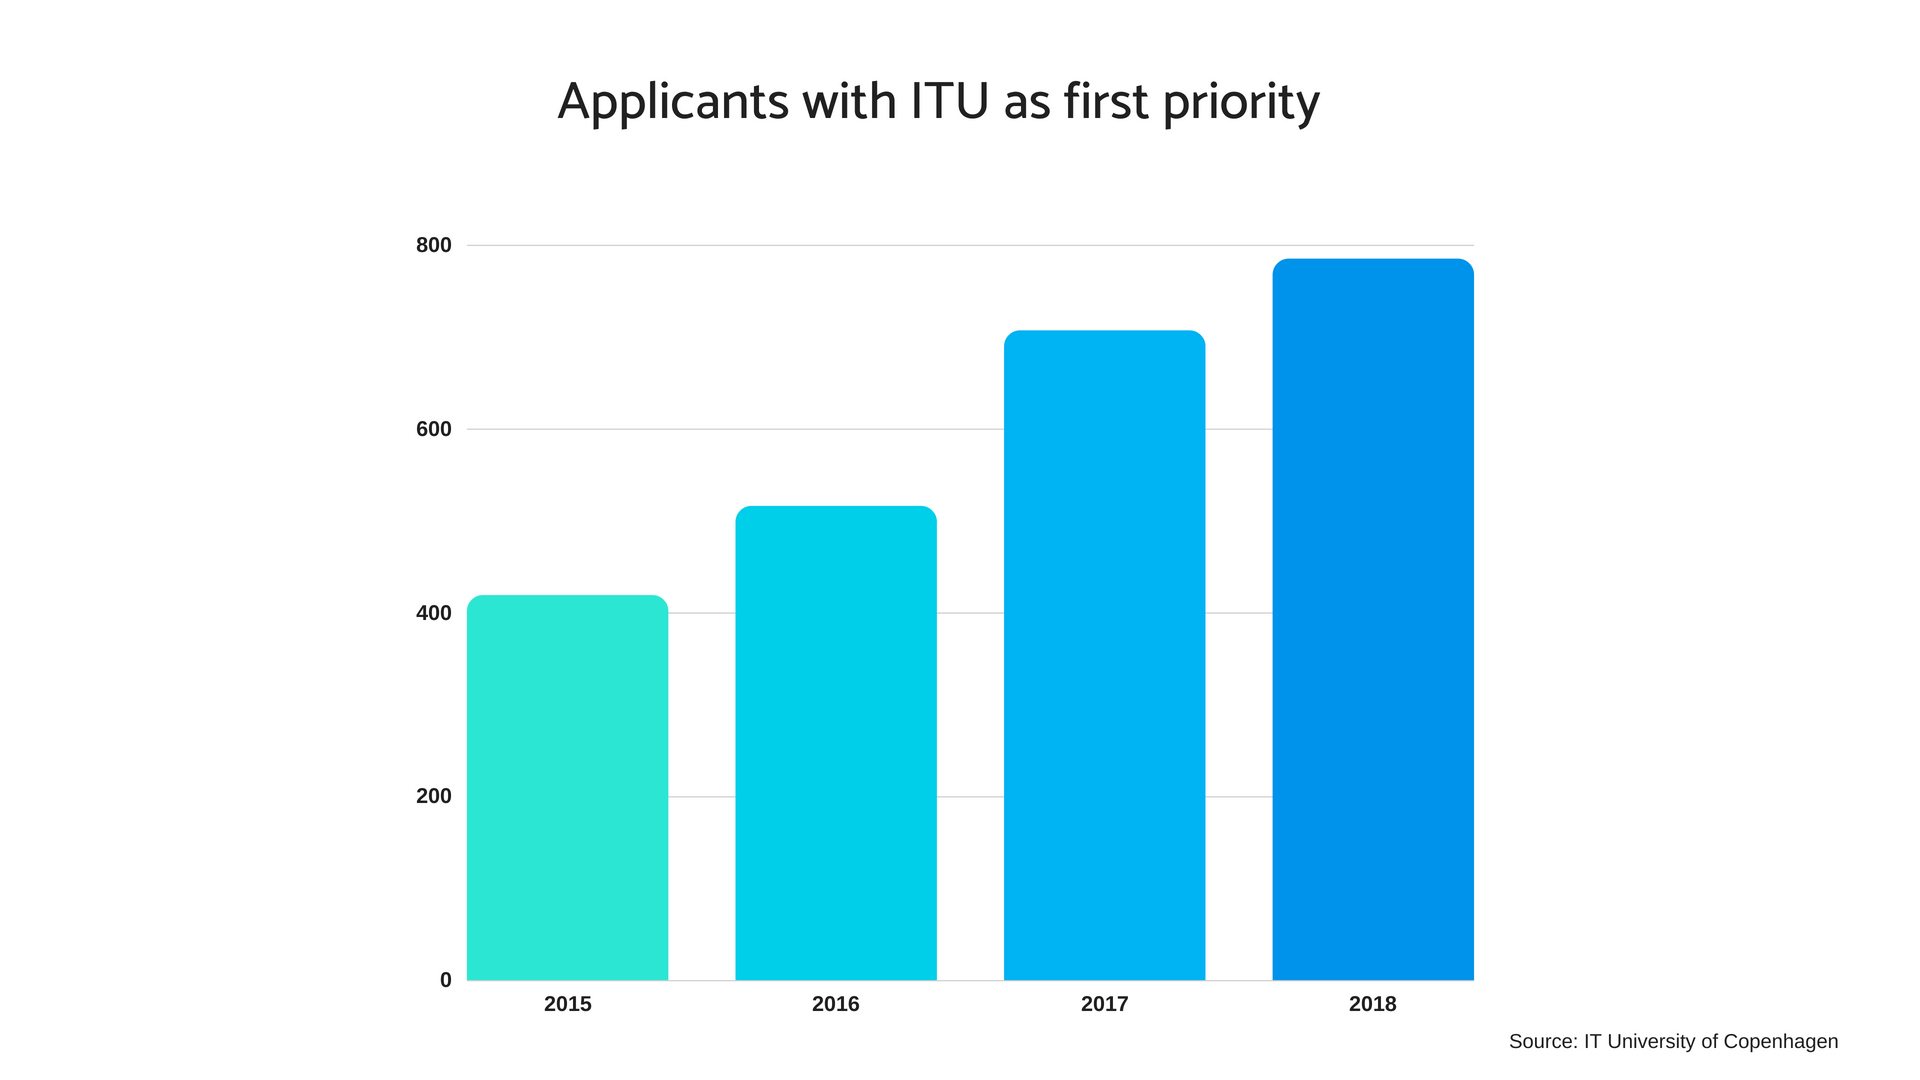 Applicants with ITU as first priority.